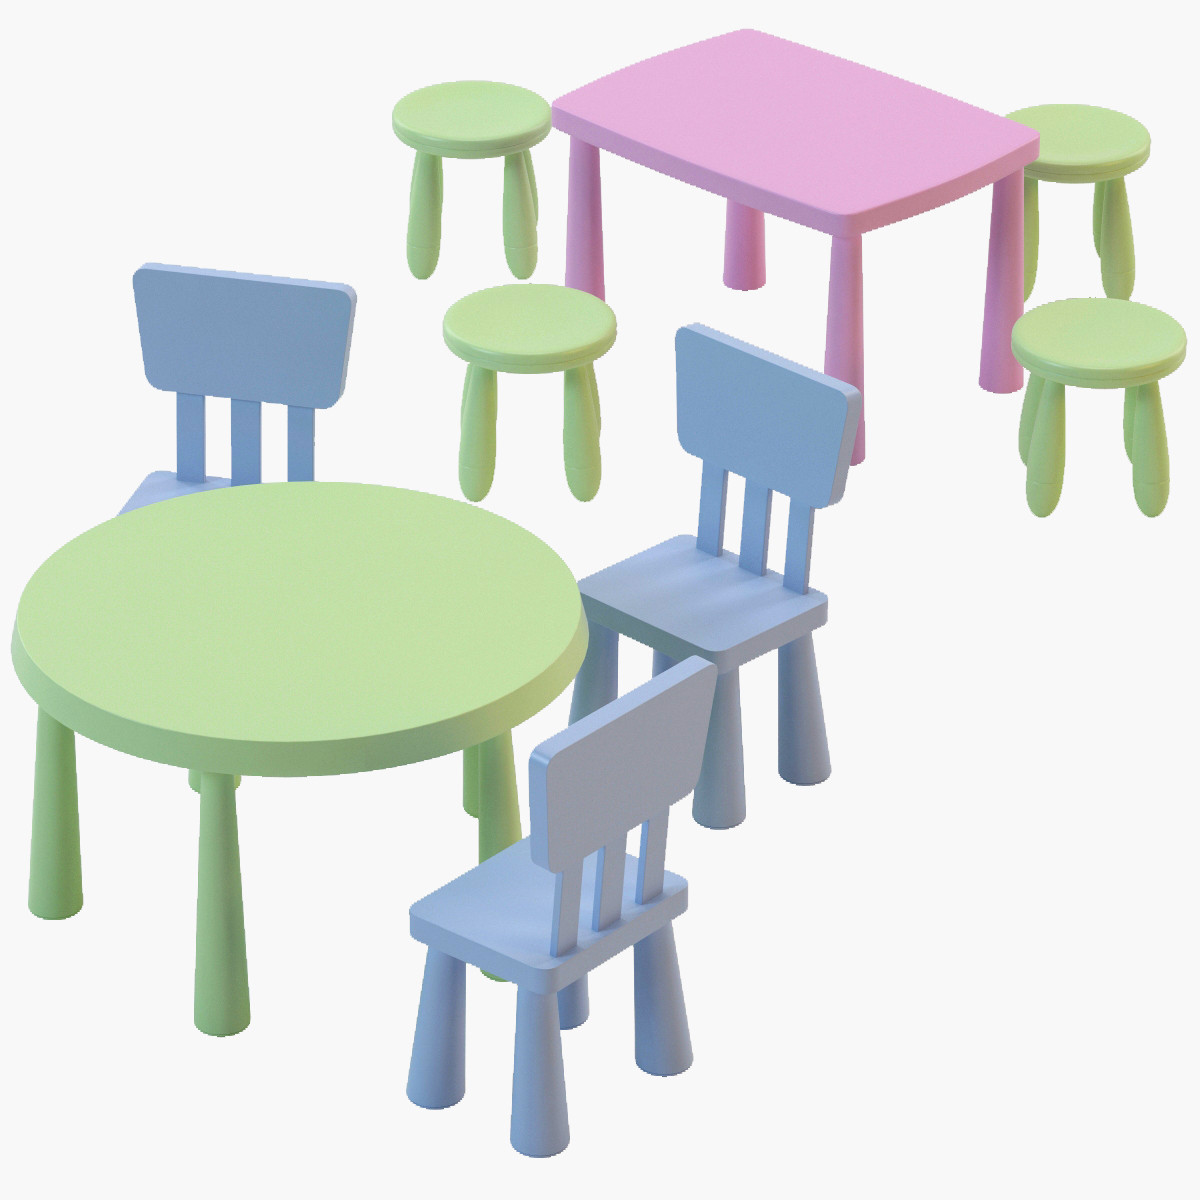 Plastic Chairs Ikea Ikea Childrens Chair And Table Sets And Drafting Table Ikea